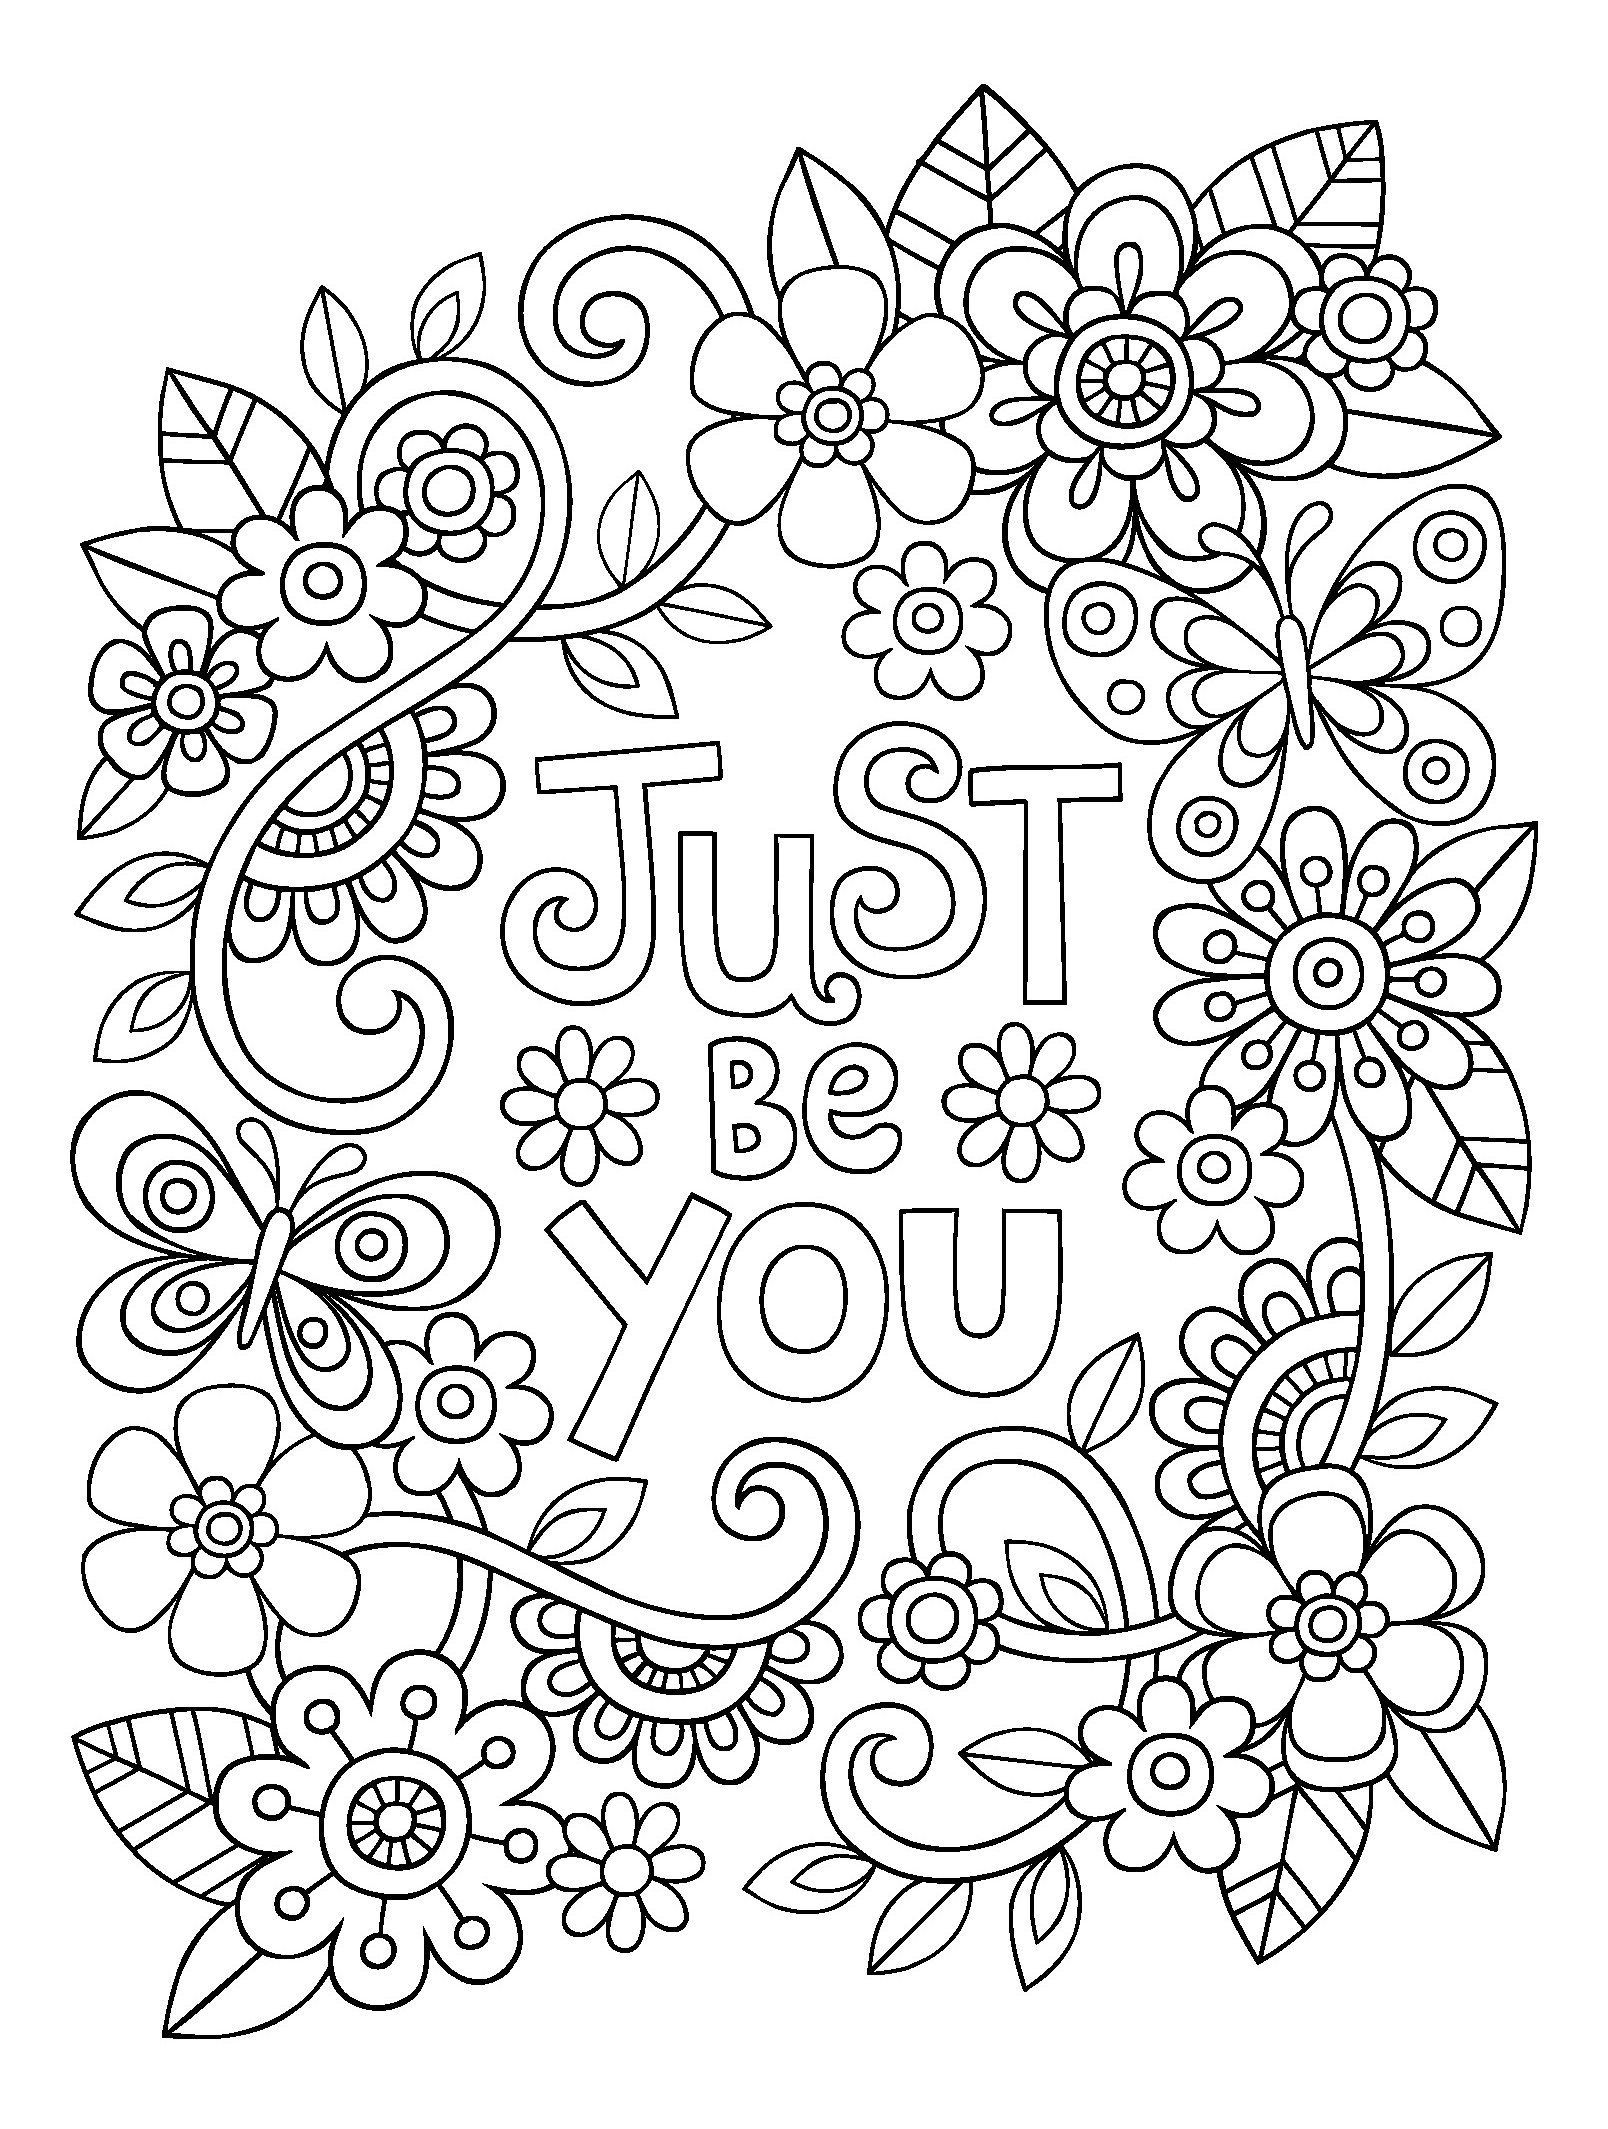 Coloring Pages Notebook Doodles Superstar Amazon De Jess Volinkski Fremdsprachige Bucher Quote Coloring Pages Coloring Pages Inspirational Coloring Pages